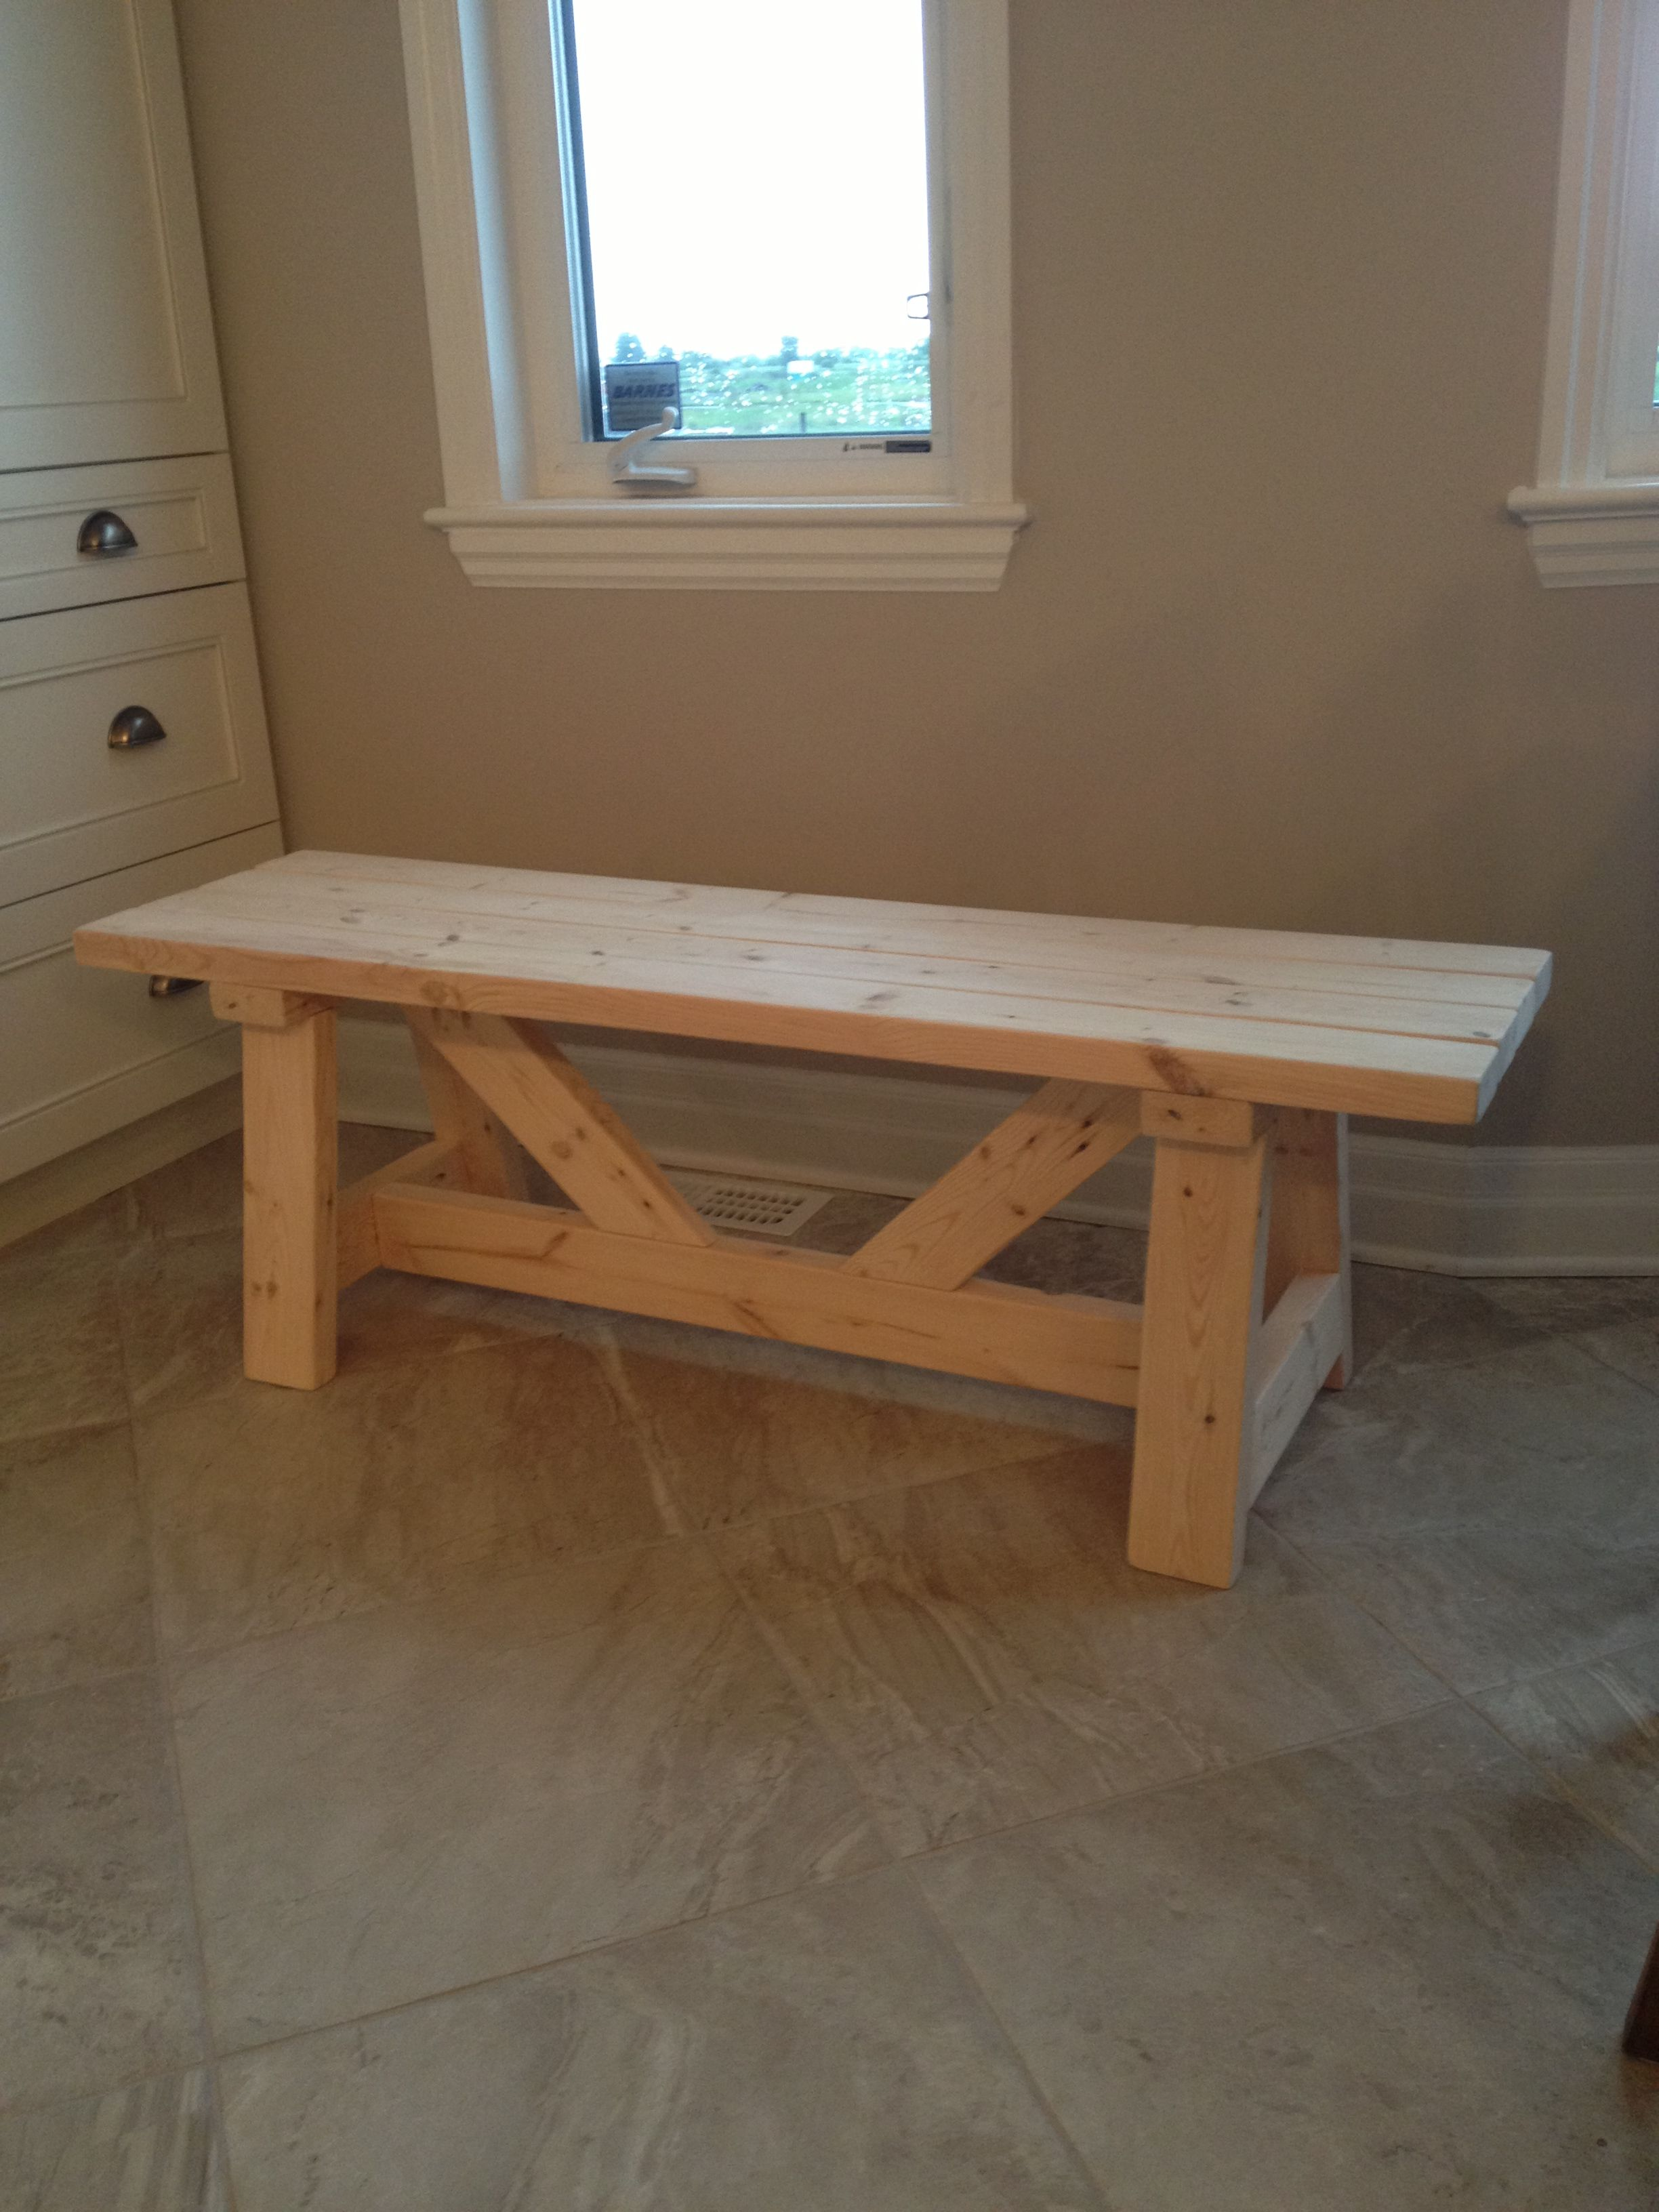 Farmhouse Bench In 1 Day Do It Yourself Home Projects